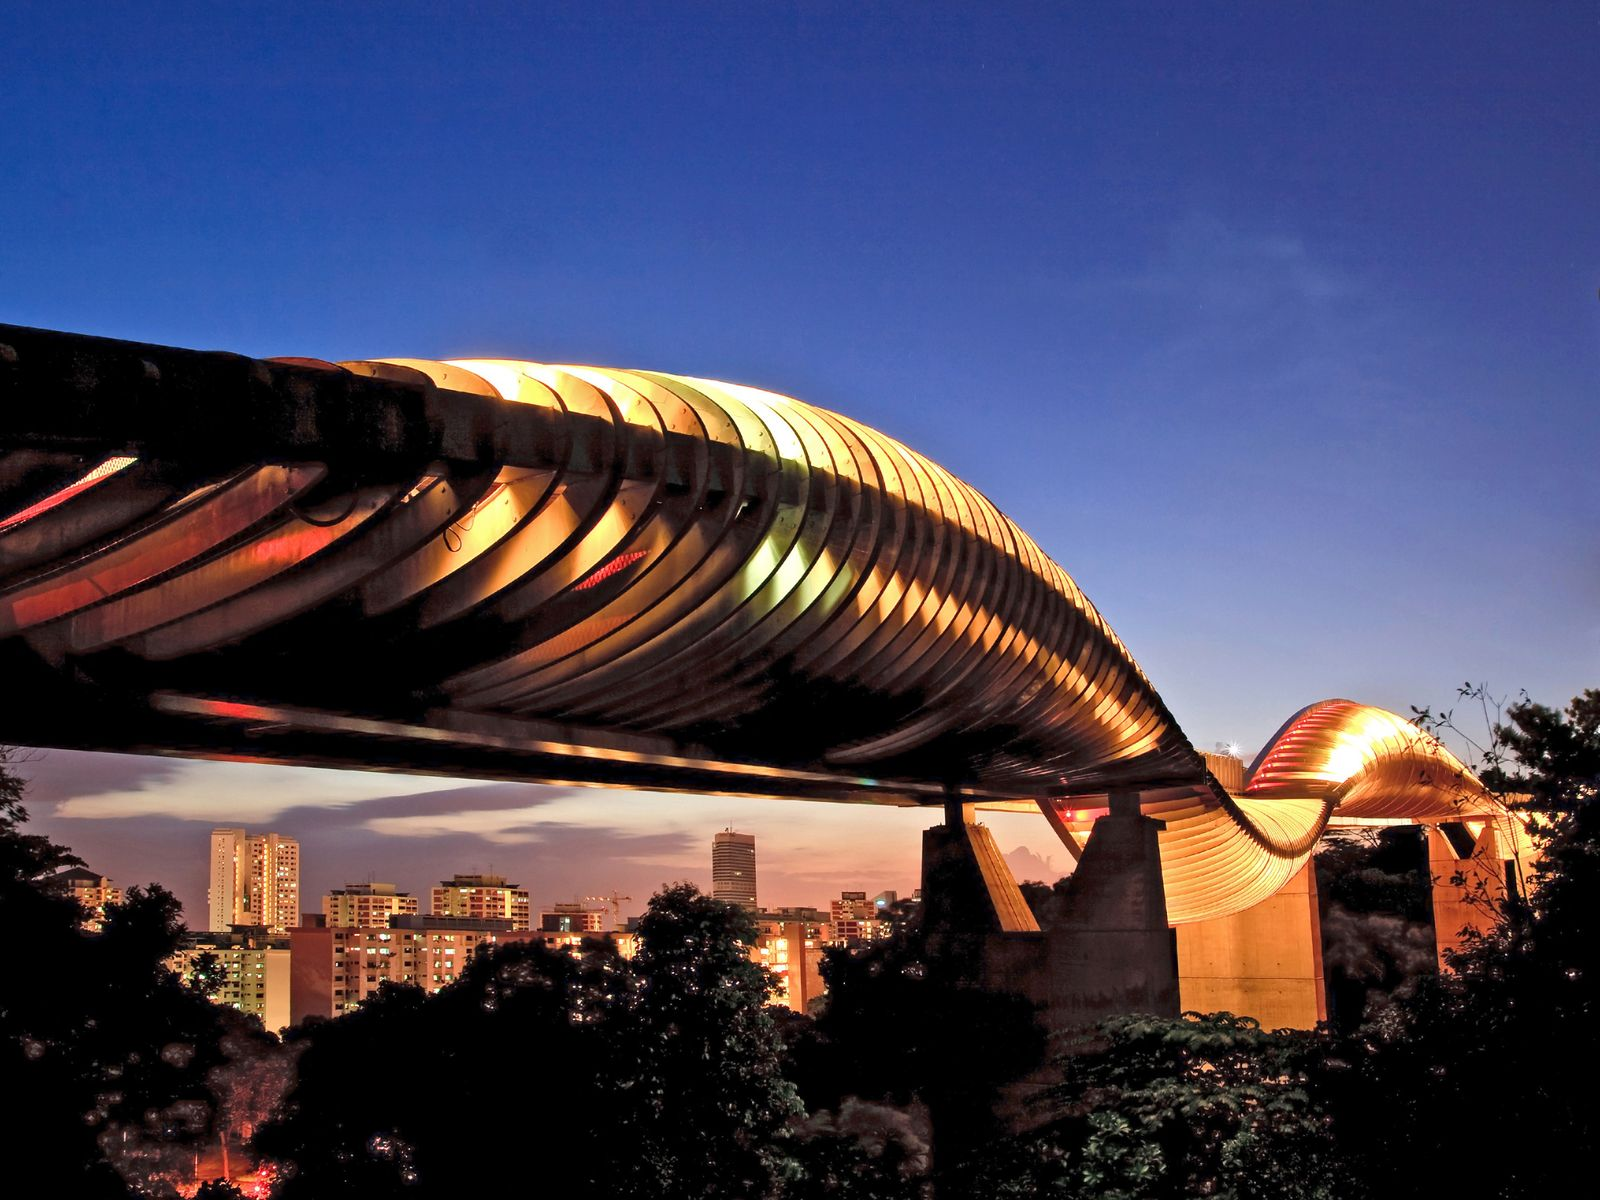 Steel and local Balau wood curve together to form the spectacular Henderson Waves, the highest pedestrian ...